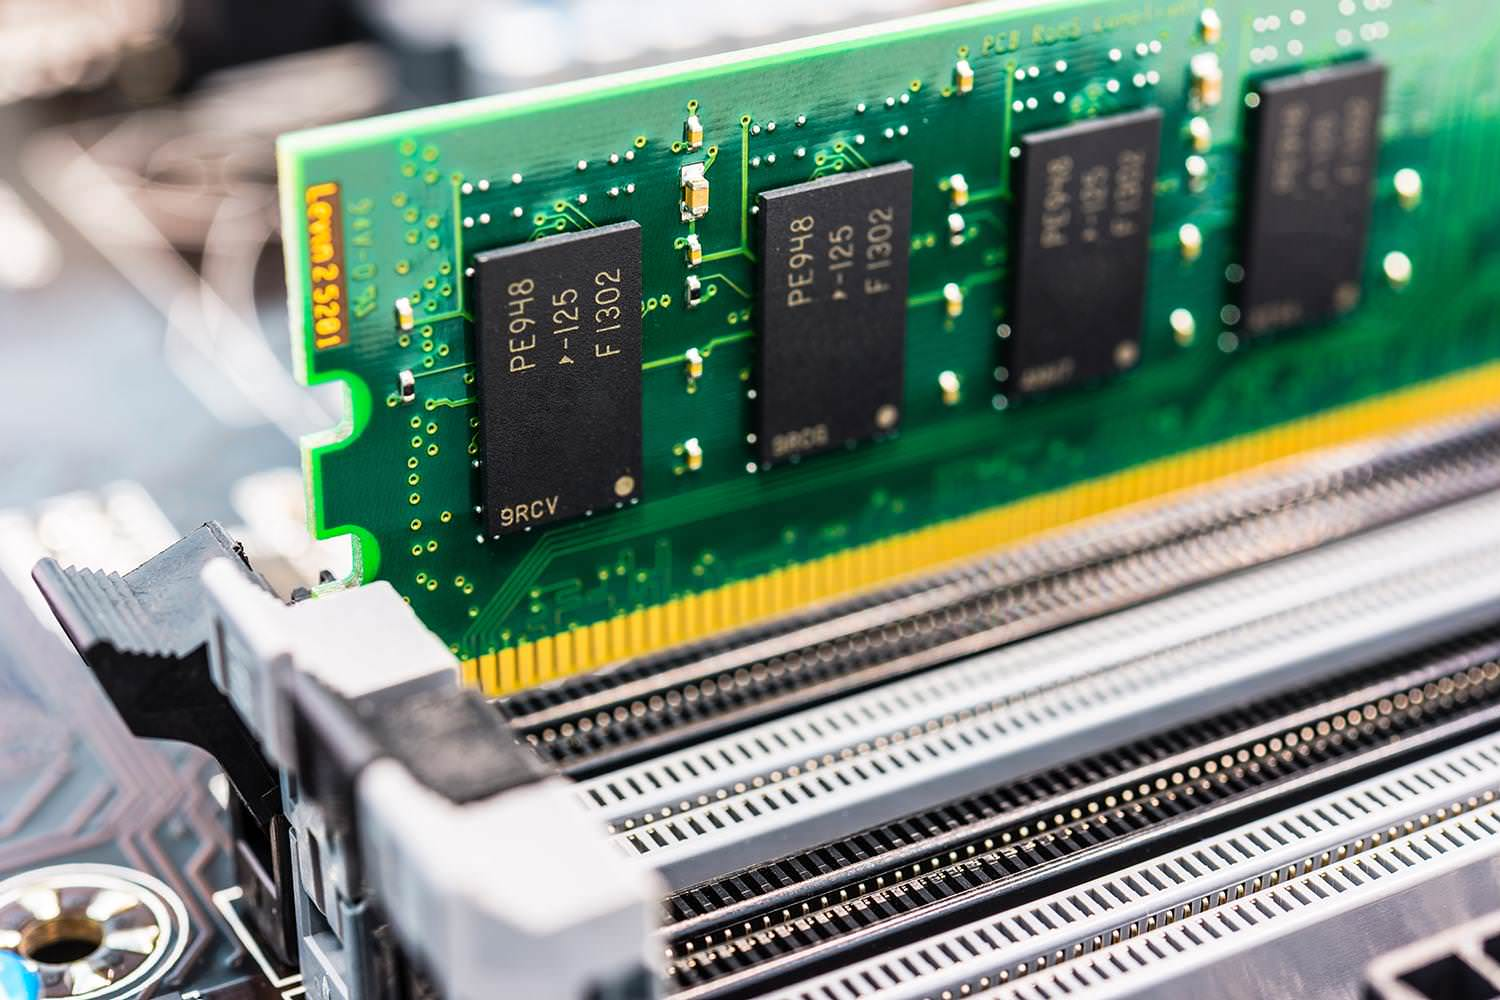 4 Free Tools To Test RAM Memory For Windows, Linux and Mac